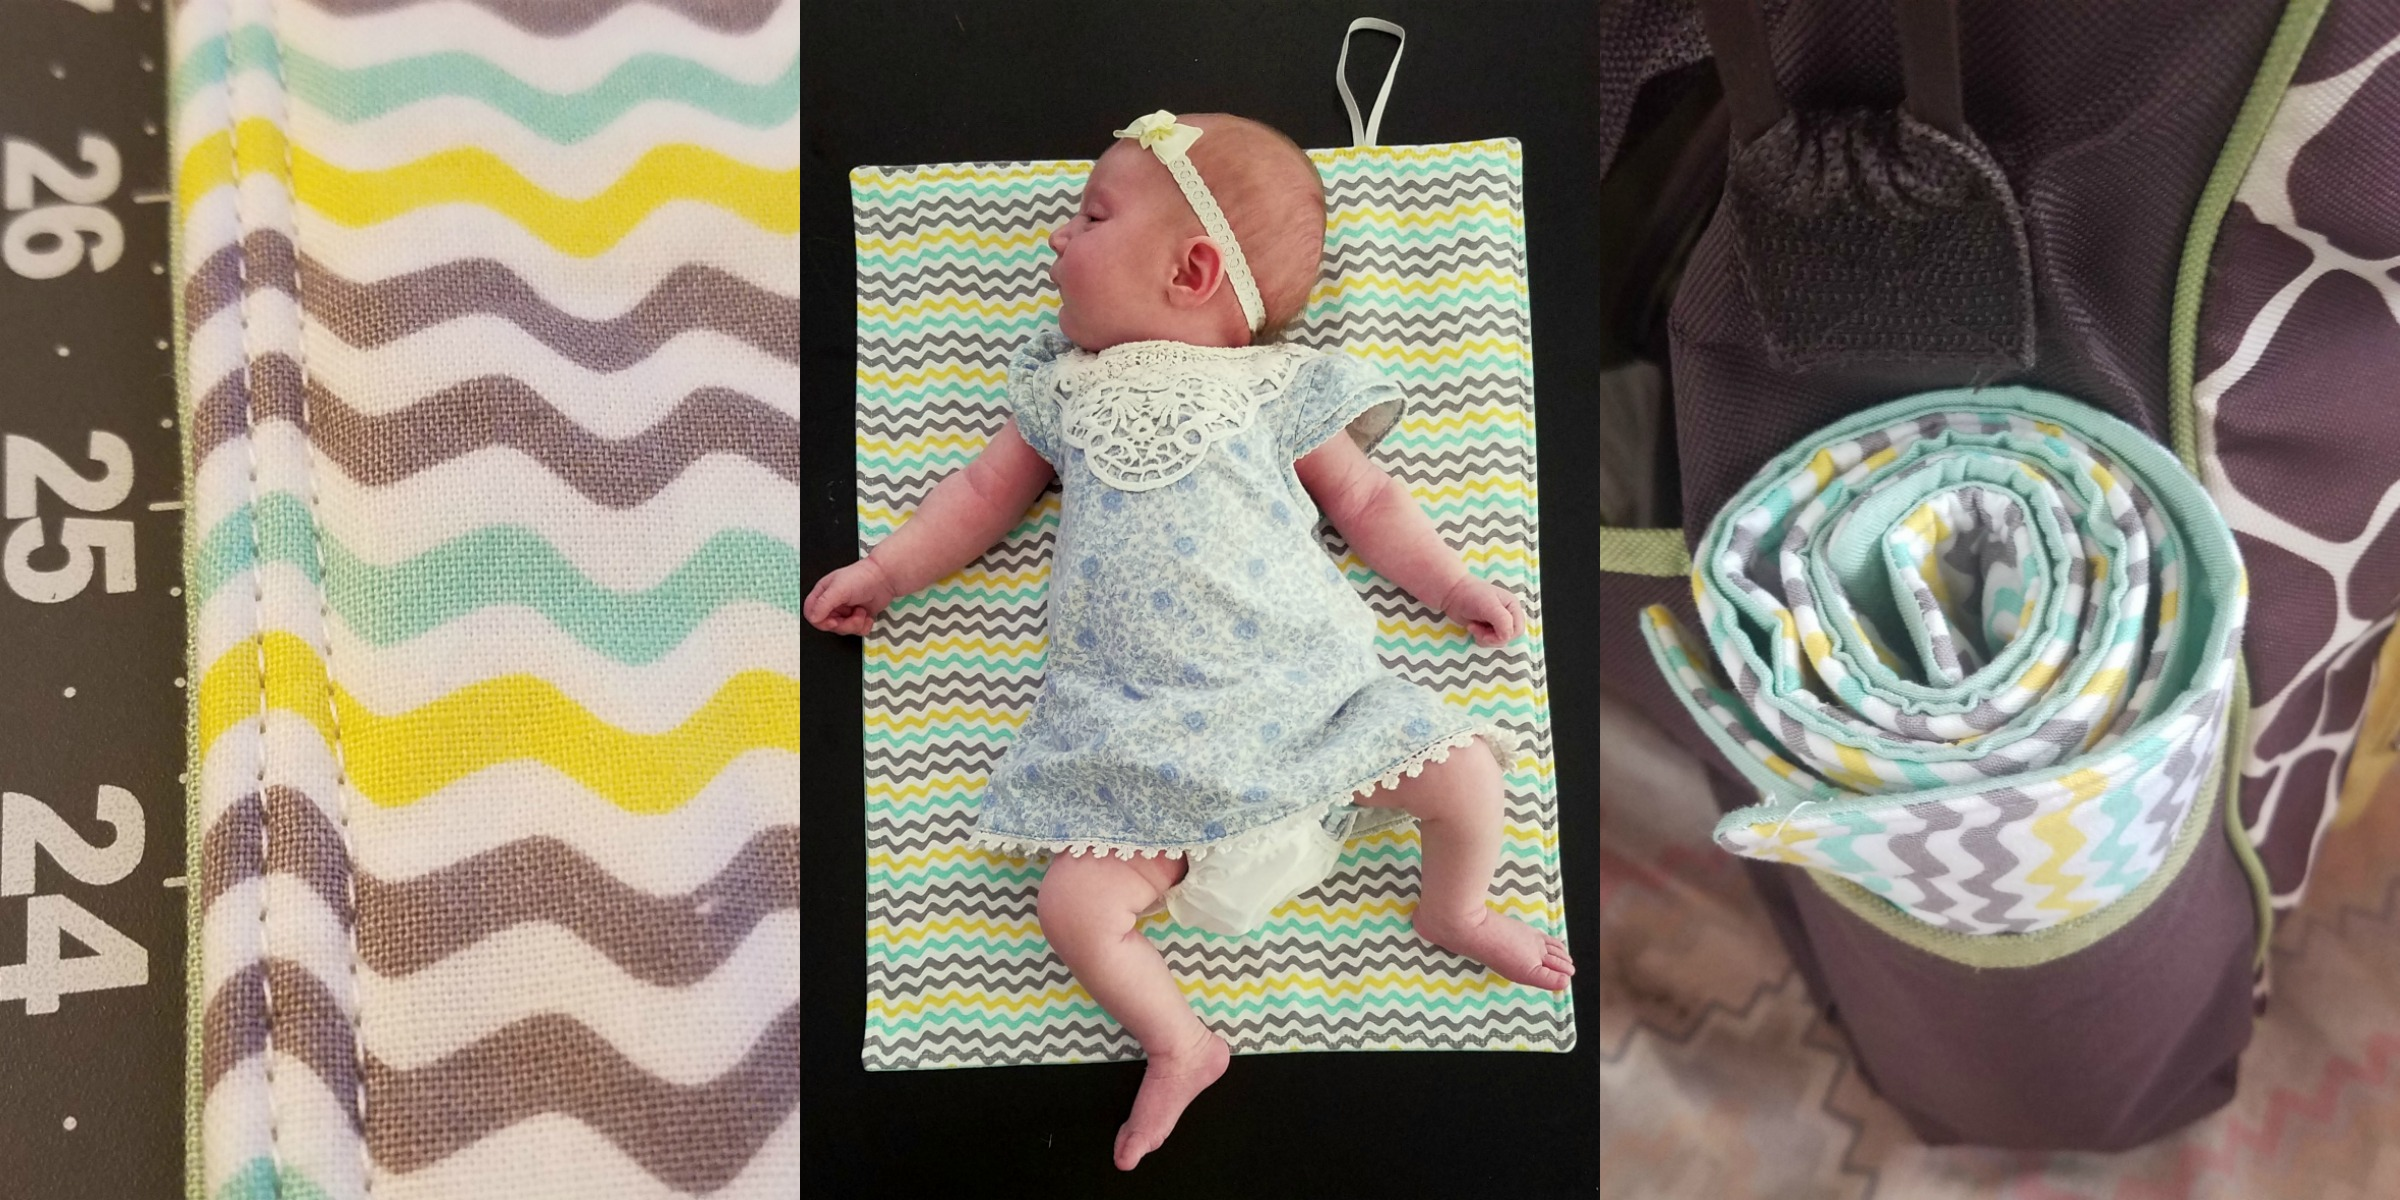 How To Make A Changing Table Pad 30 Minute Diy Roll Up Changing Pad U2013  Keystone